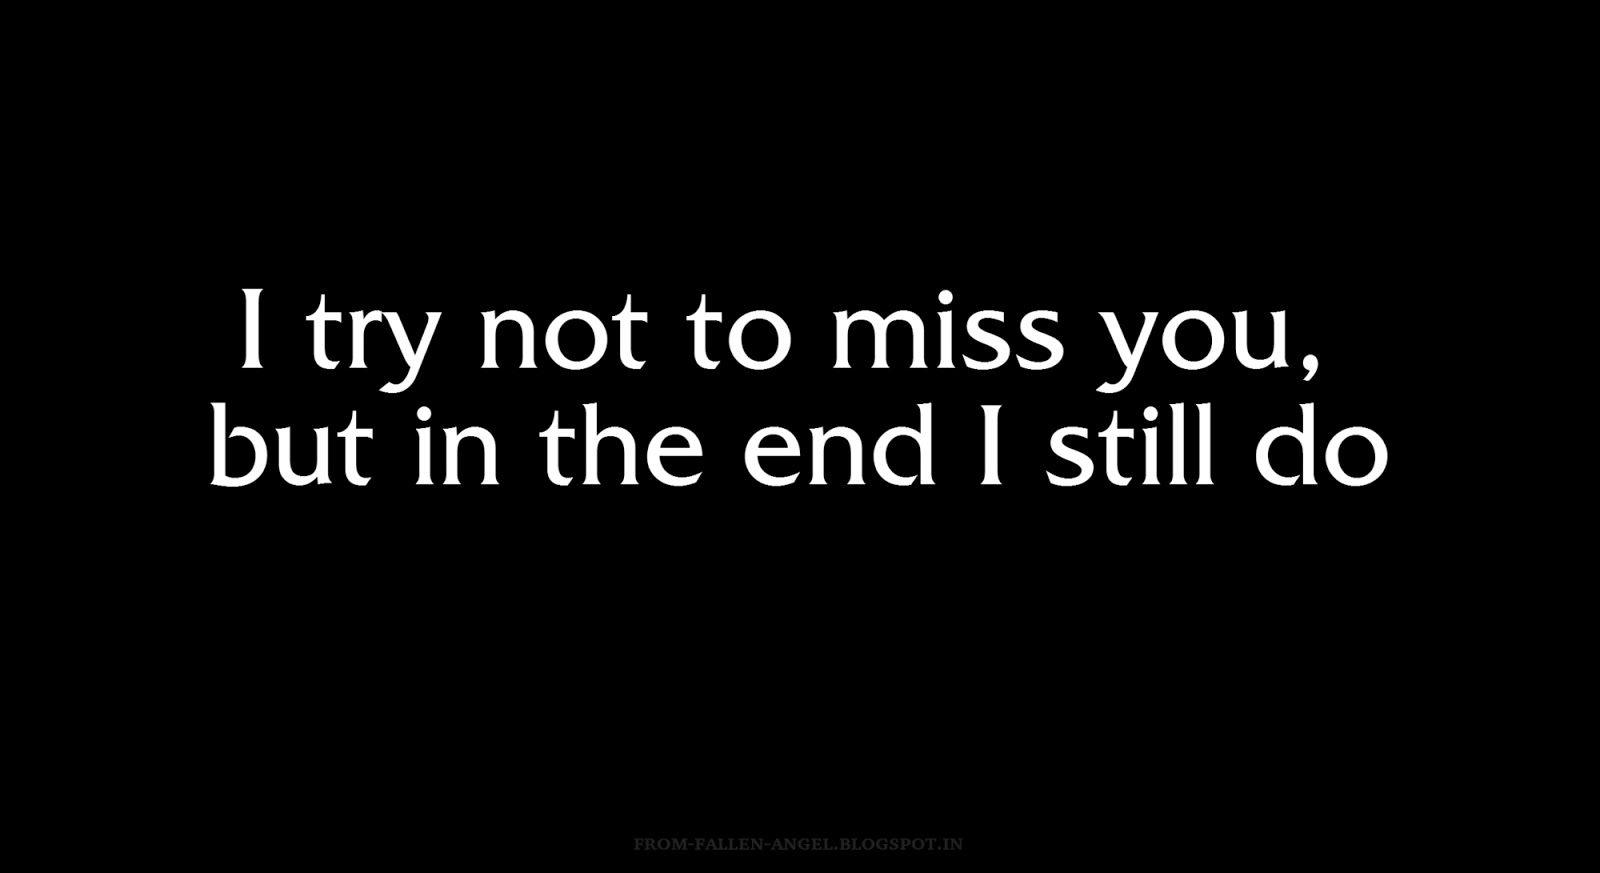 I try not to miss you, but in the end I still do